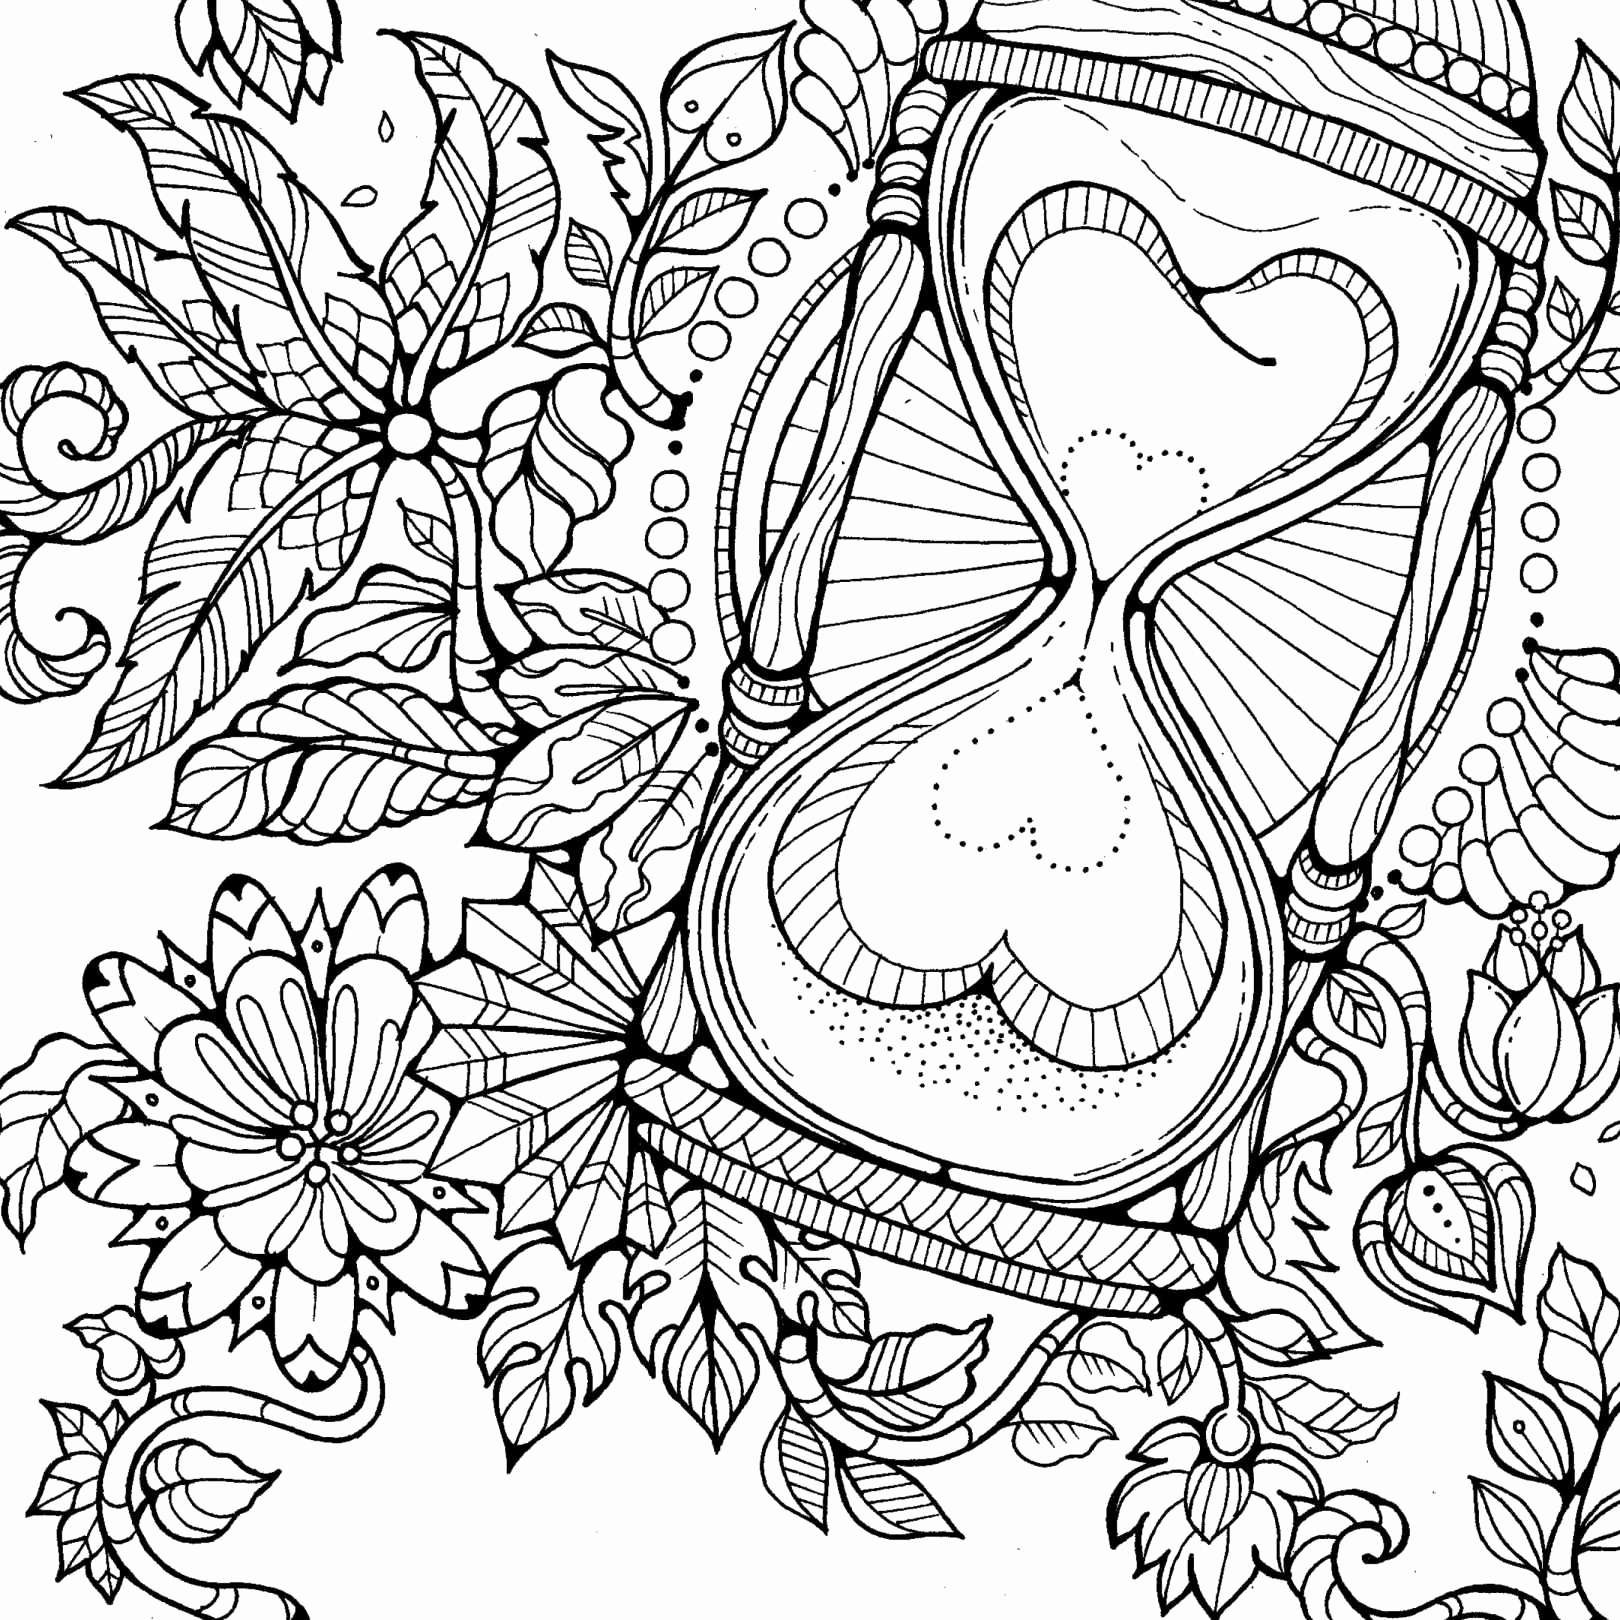 Xmas Coloring Pics With Pages Save 40 Christmas Tree